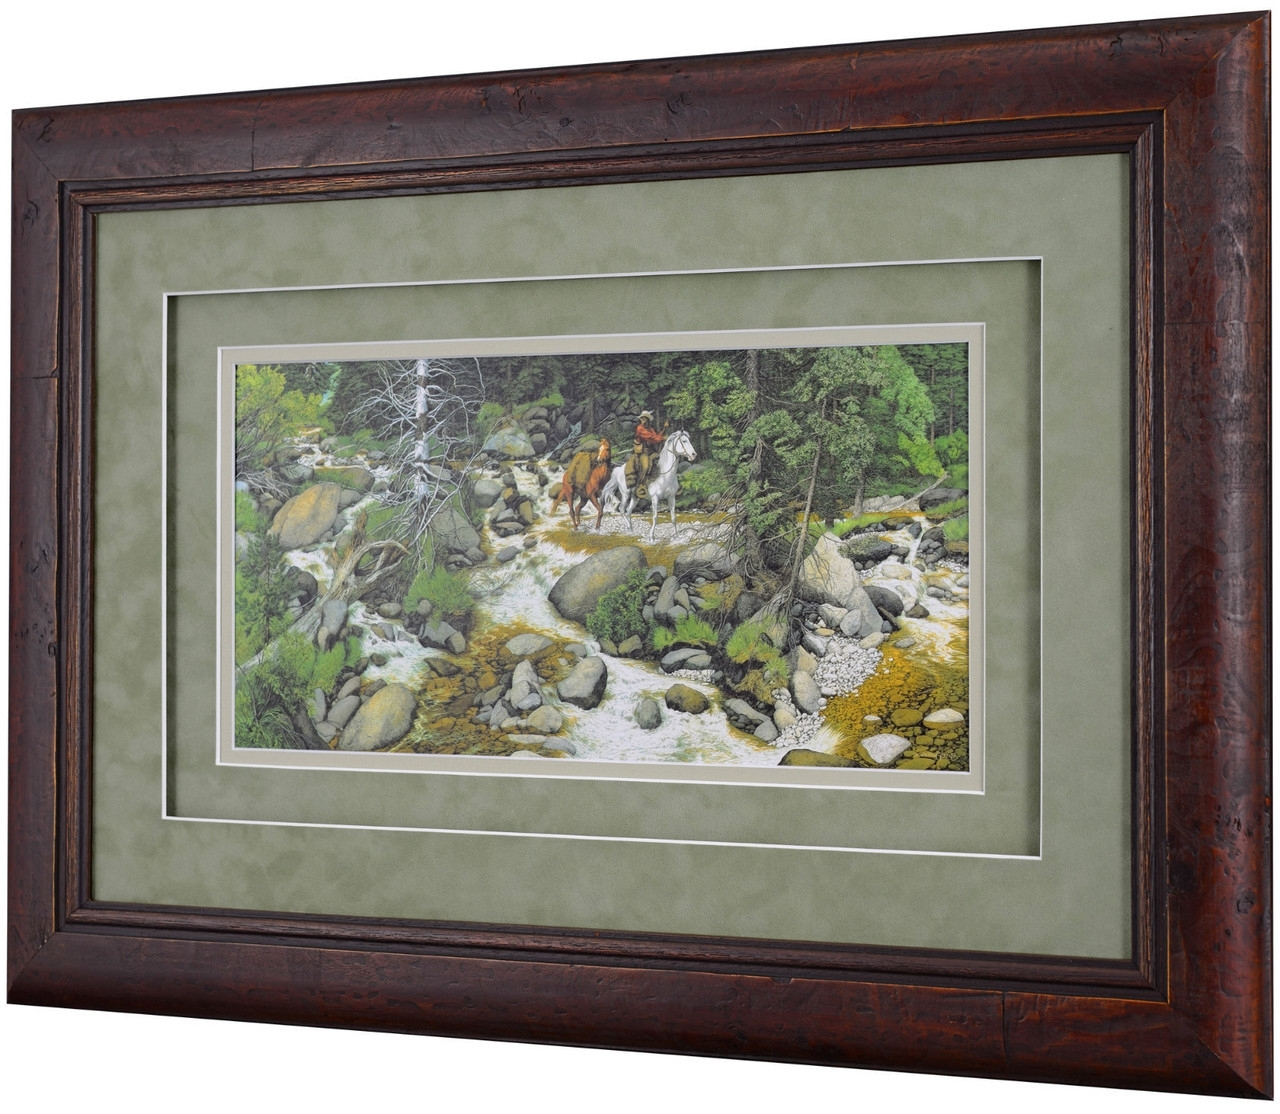 Framed And Matted Art Prints Inside Well Liked Bev Doolittle Art For Sale (View 4 of 15)